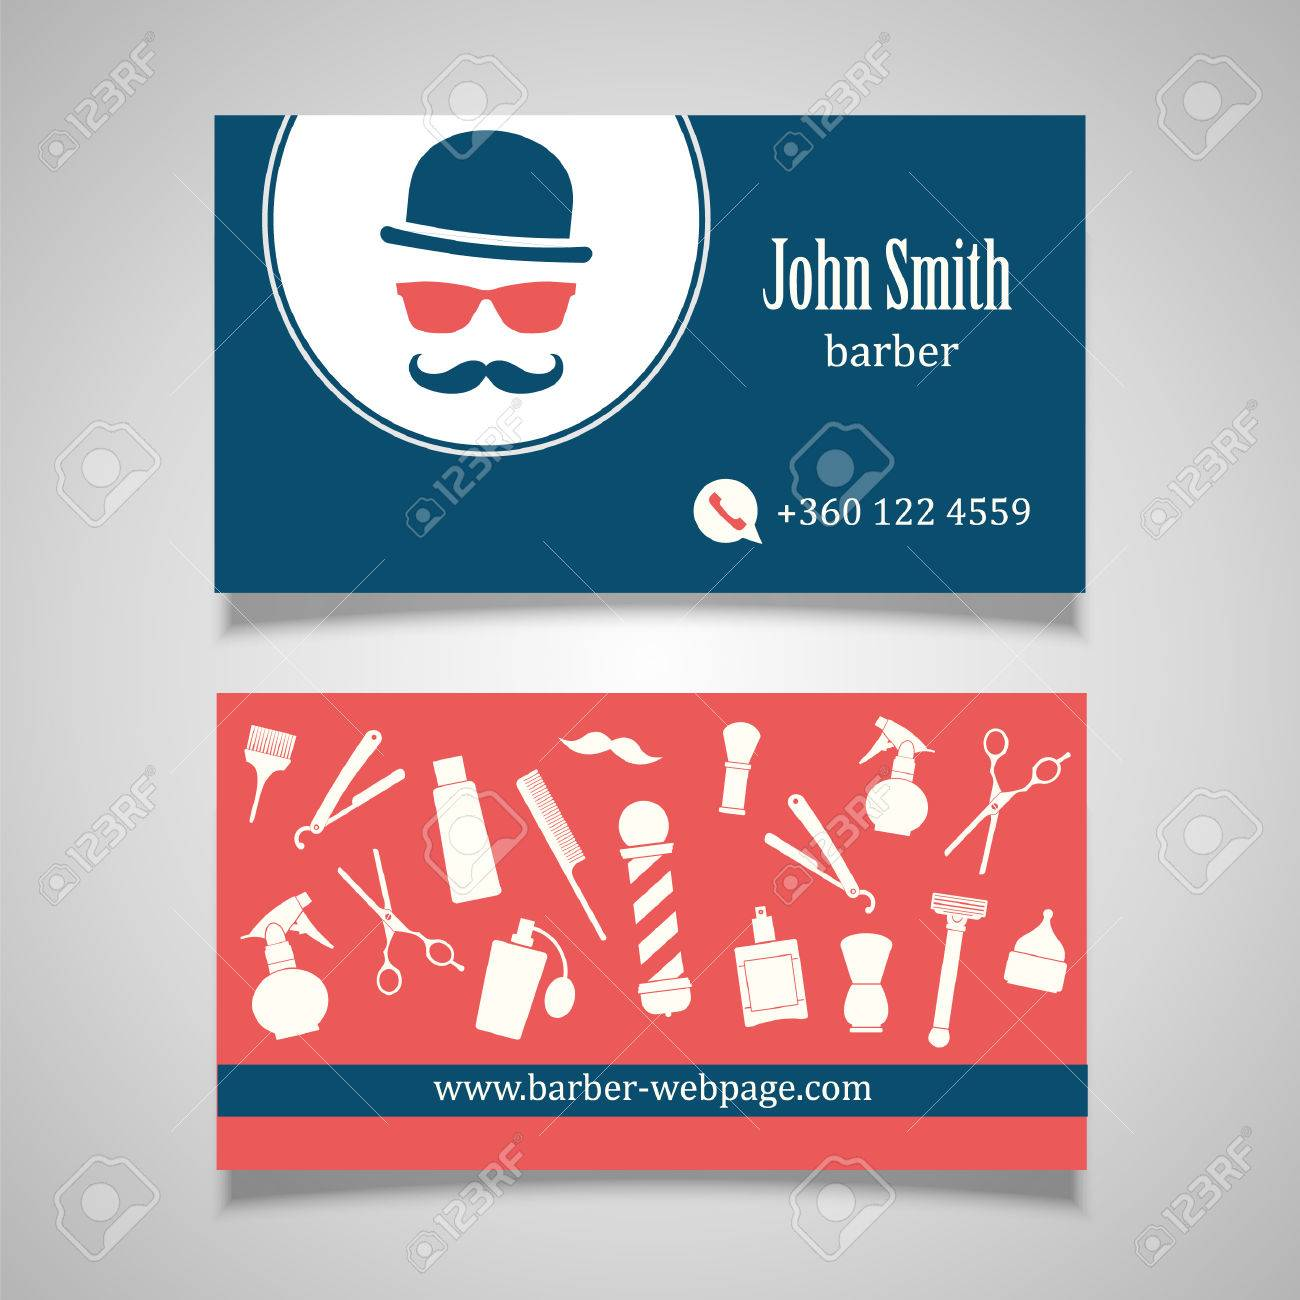 Hair salon barber shop business card design template royalty free hair salon barber shop business card design template stock vector 41642488 flashek Images